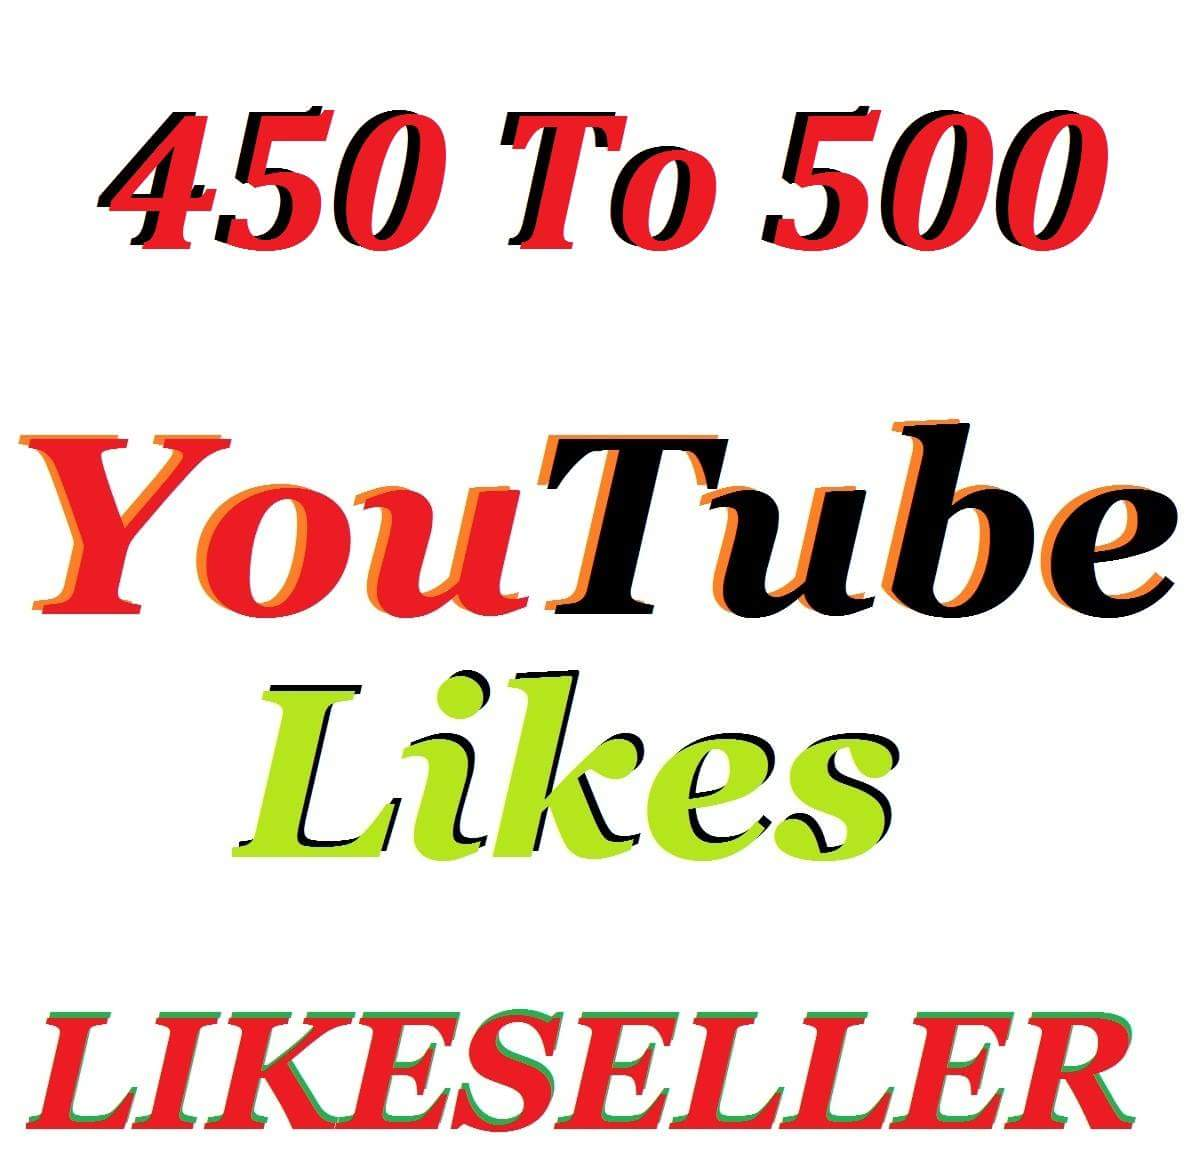 Instant start 401 to 501 youtube like 1-12 hours delivery